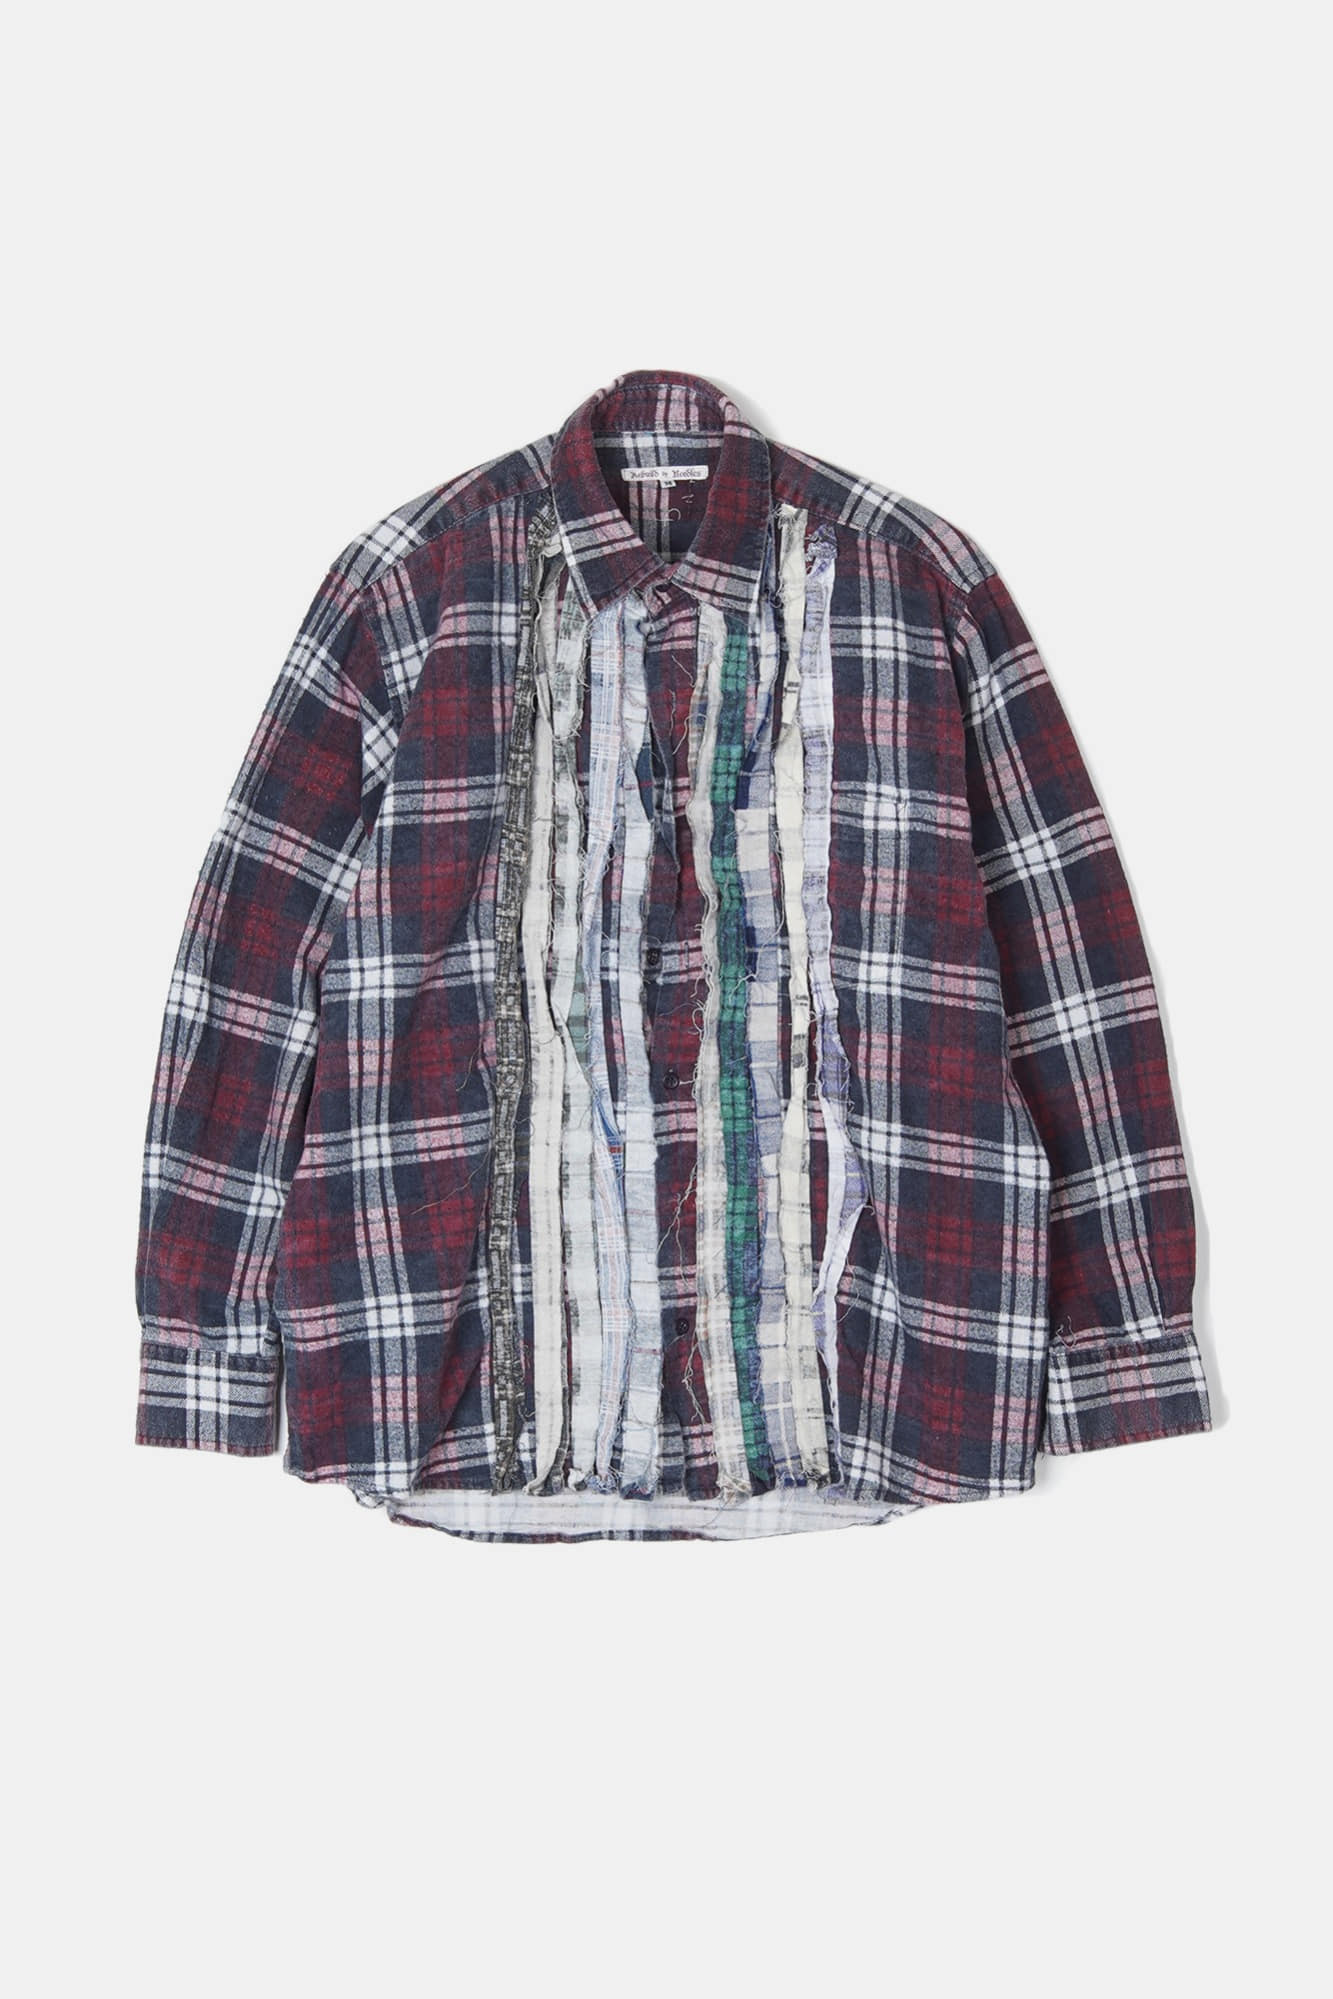 REBUILD BY NEEDLES Flannel Ribbon Shirt 2